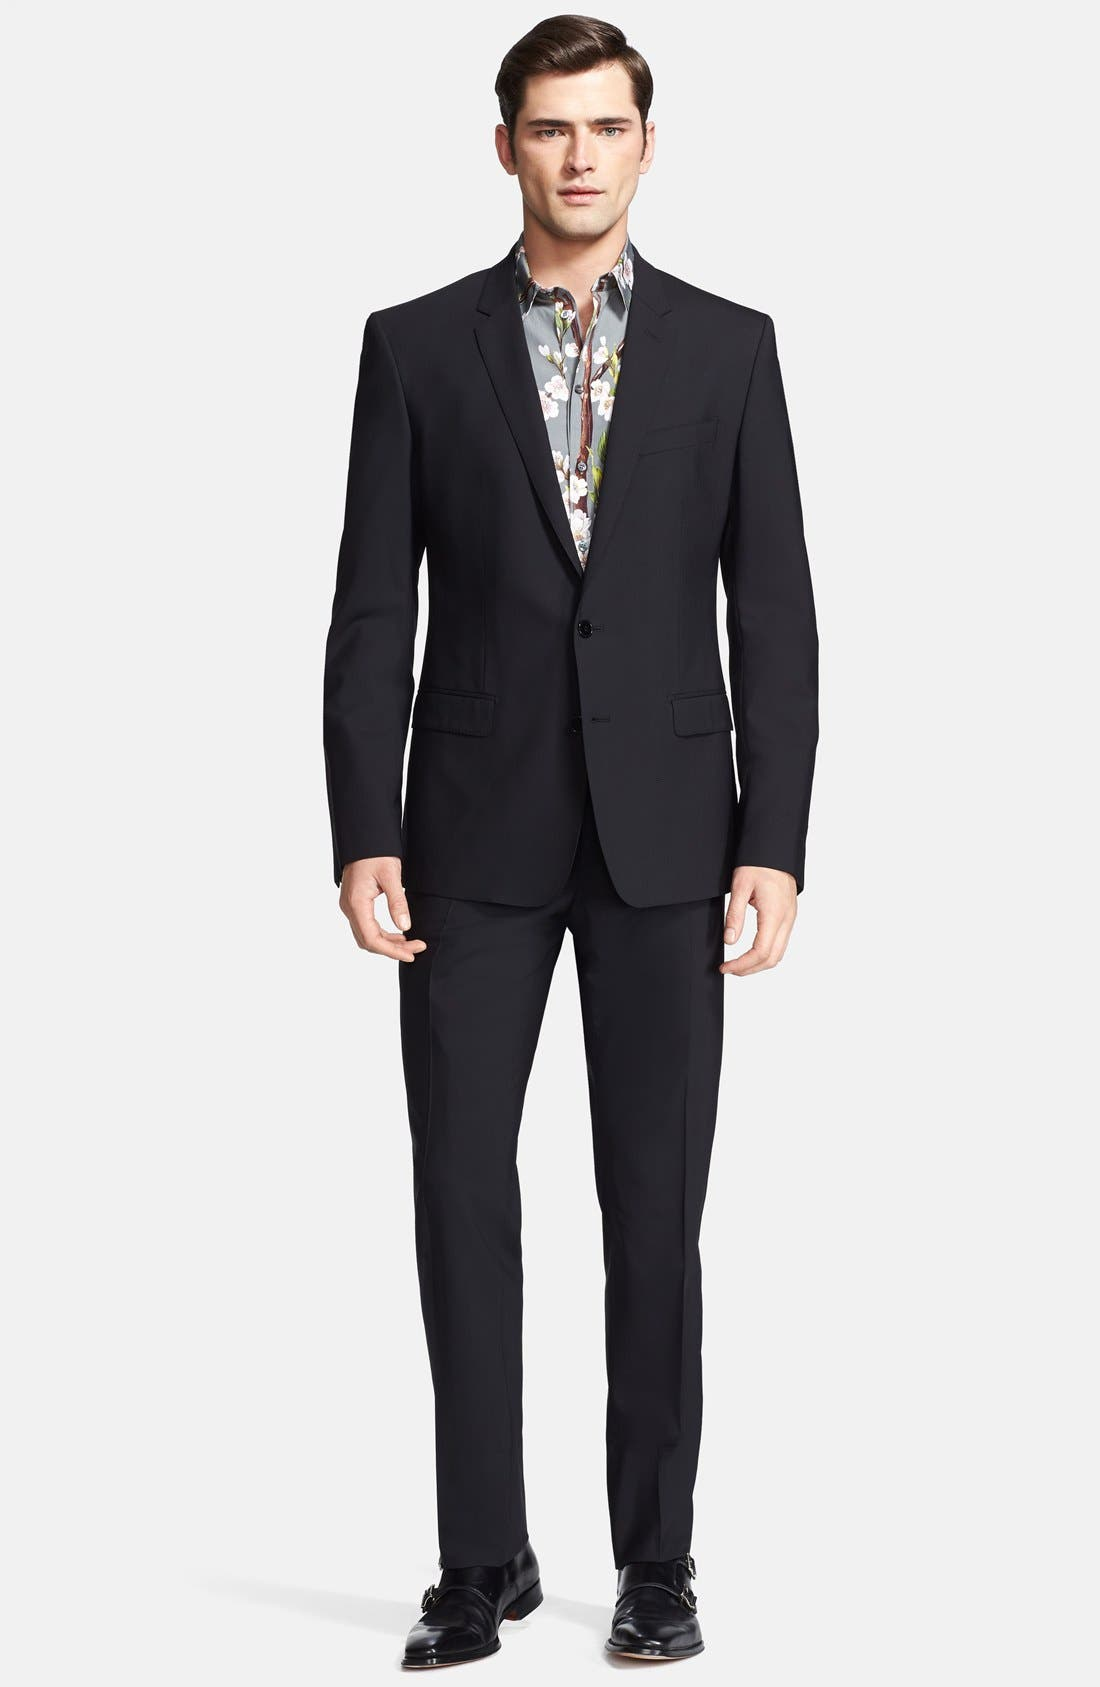 Alternate Image 1 Selected - Dolce&Gabbana 'Martini' Stretch Wool Suit